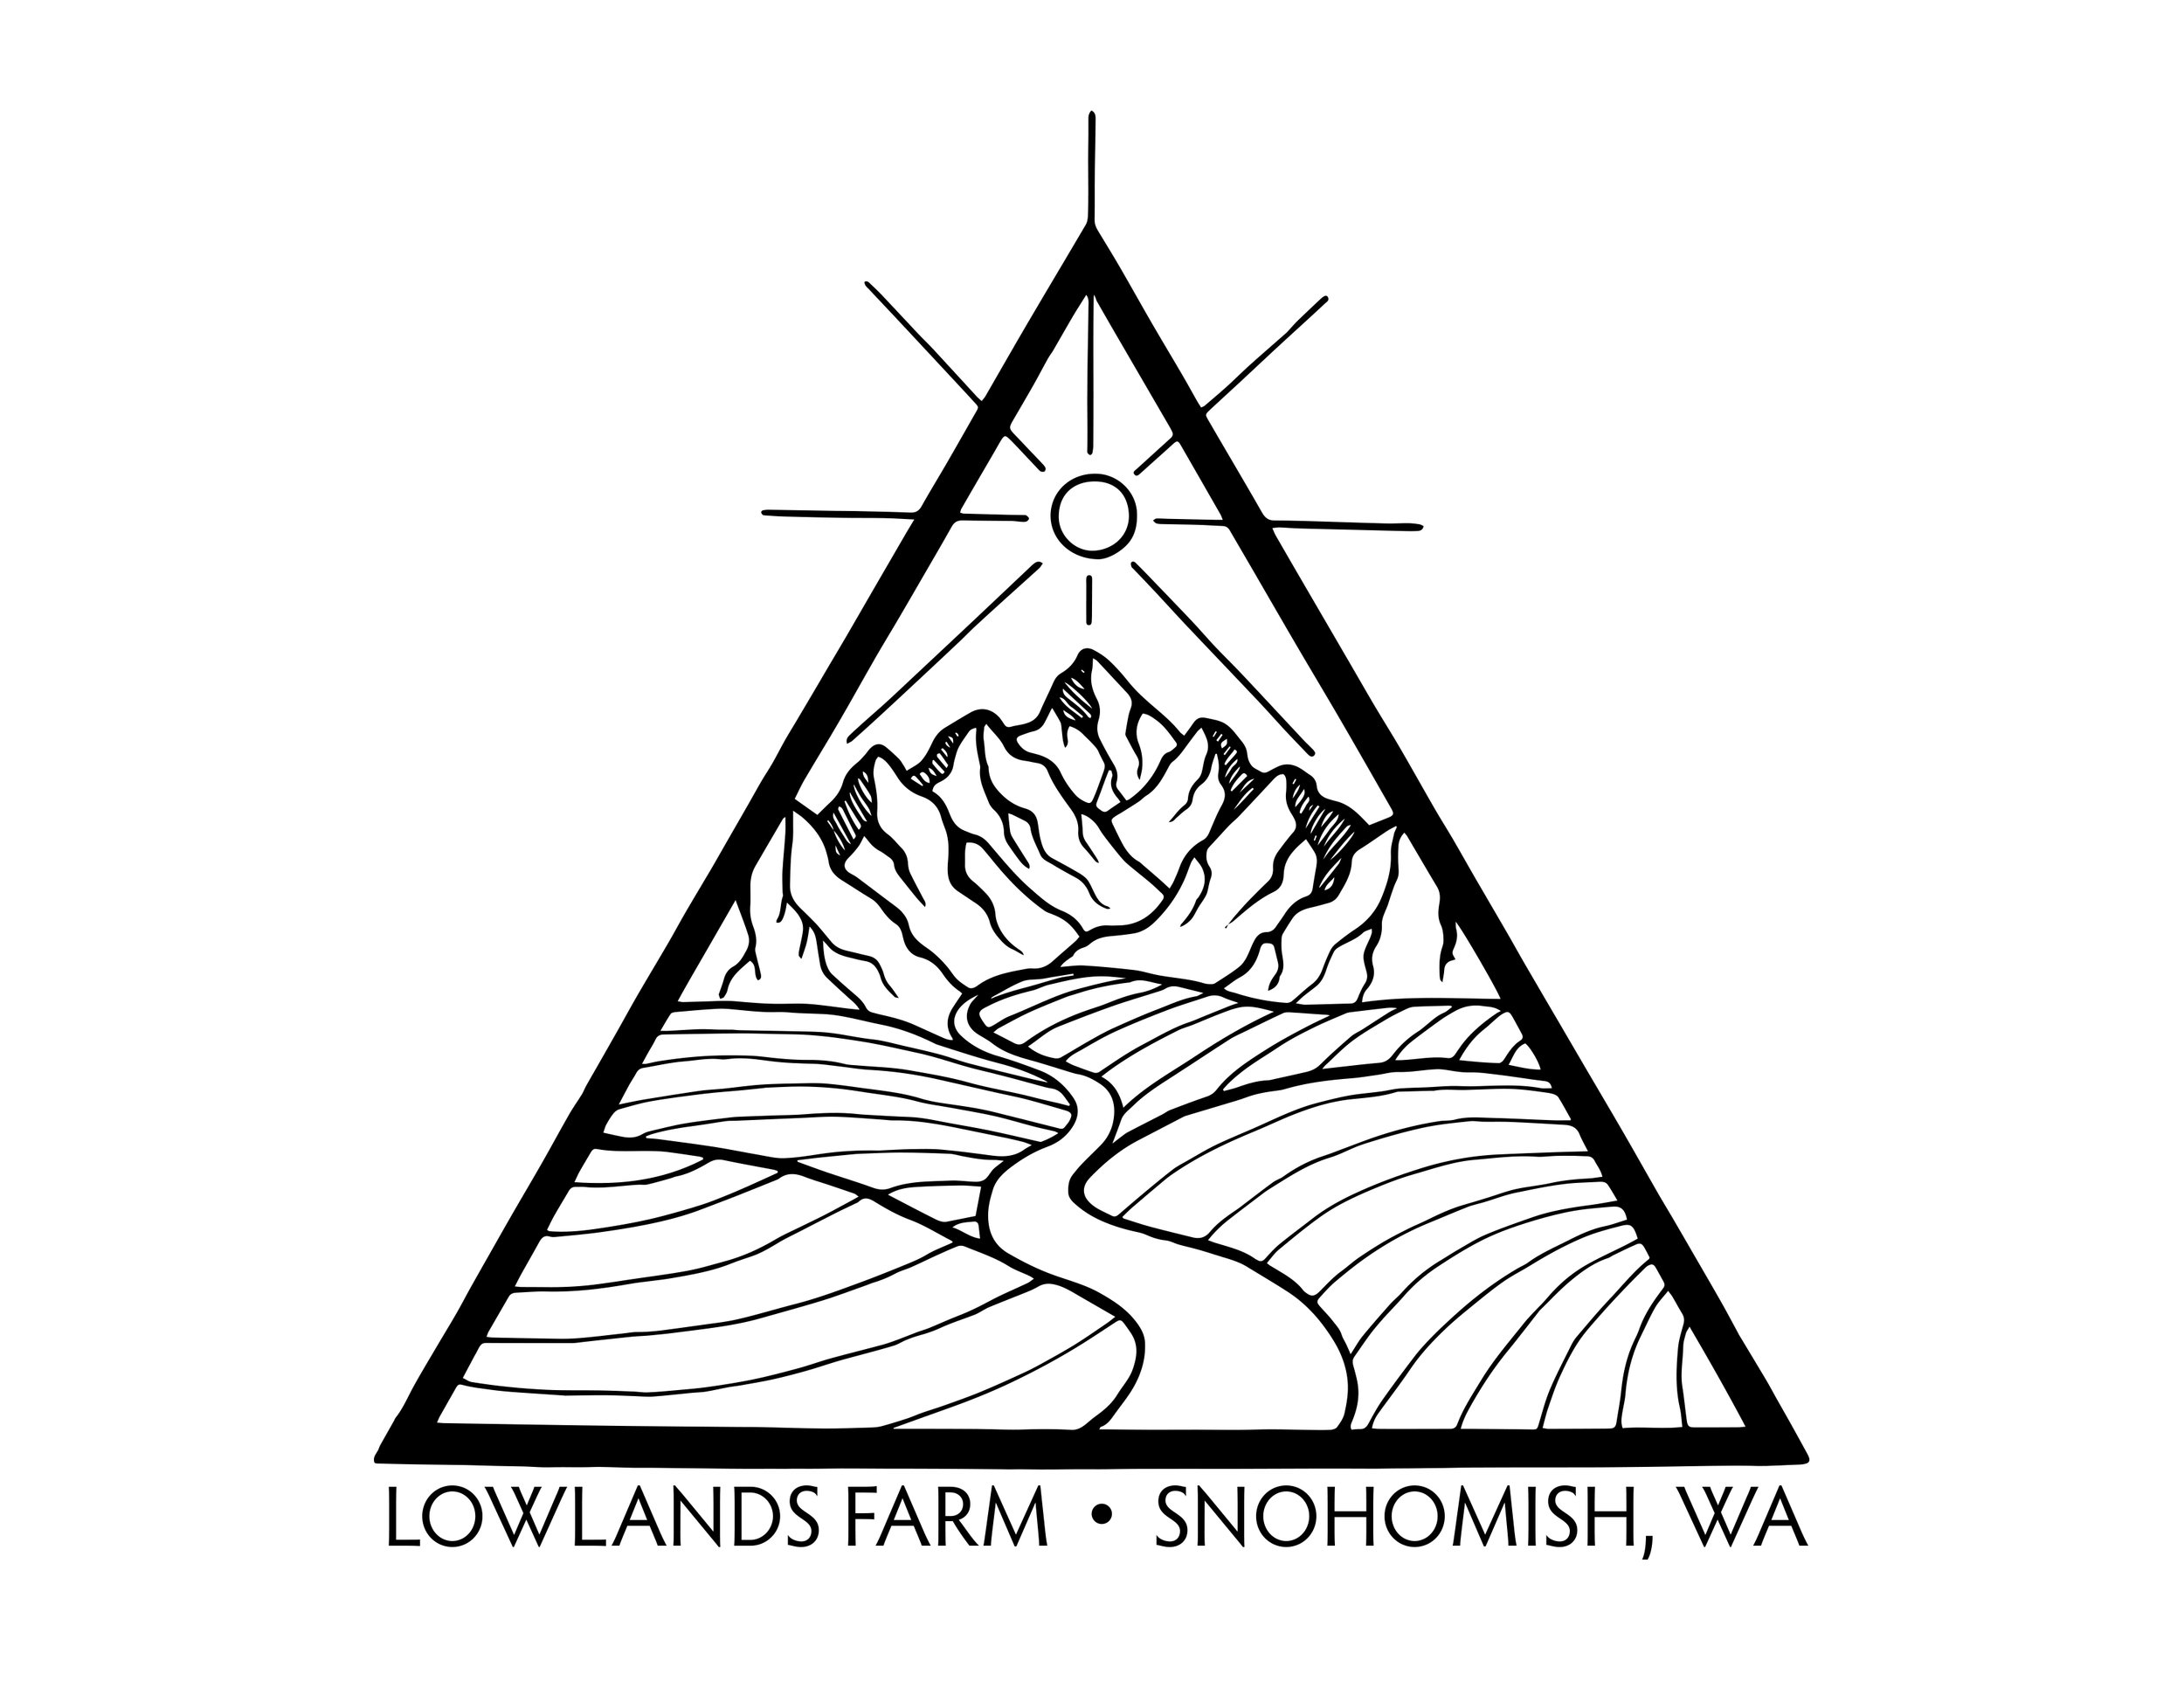 Lowlands Farm - Lowlands Farm is a small flower and produce farm located in beautiful Snohomish, Washington. We use organic and sustainable farming practices to care for the land and resources, ensuring that only the highest quality products reach our customers. Stewardship of the farm means not only caring for the land, but also cultivating community and providing a living wage for our farmers and staff.